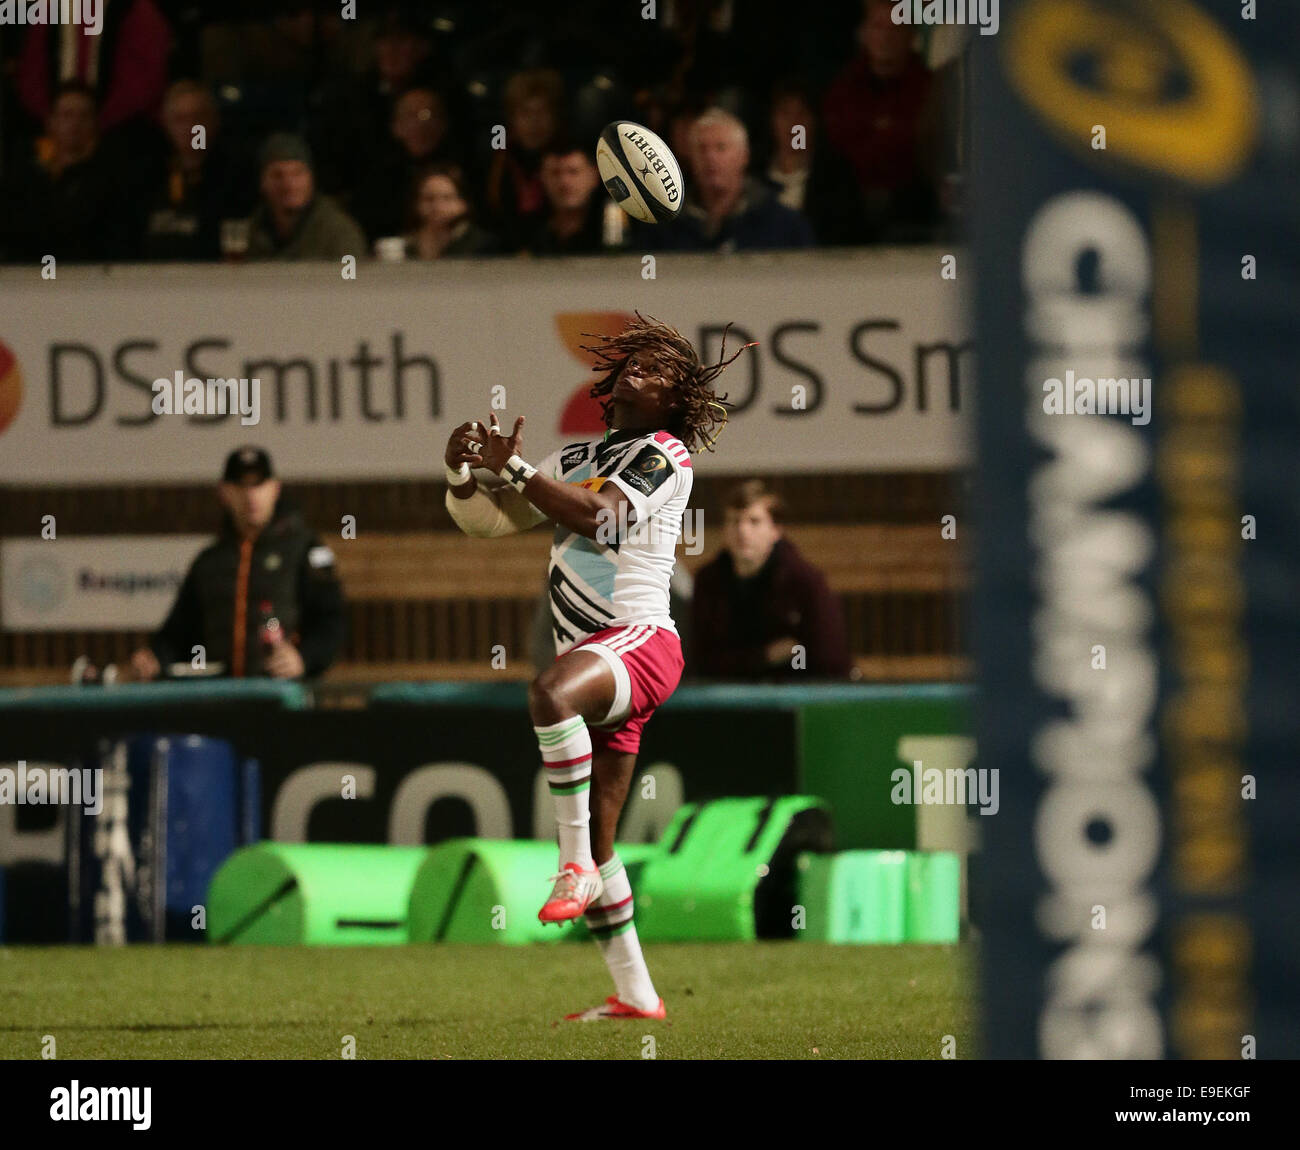 High Wycombe, UK. 26th Oct, 2014. European Rugby Champions Cup. Wasps versus Harlequins. Marland Yarde covers a - Stock Image